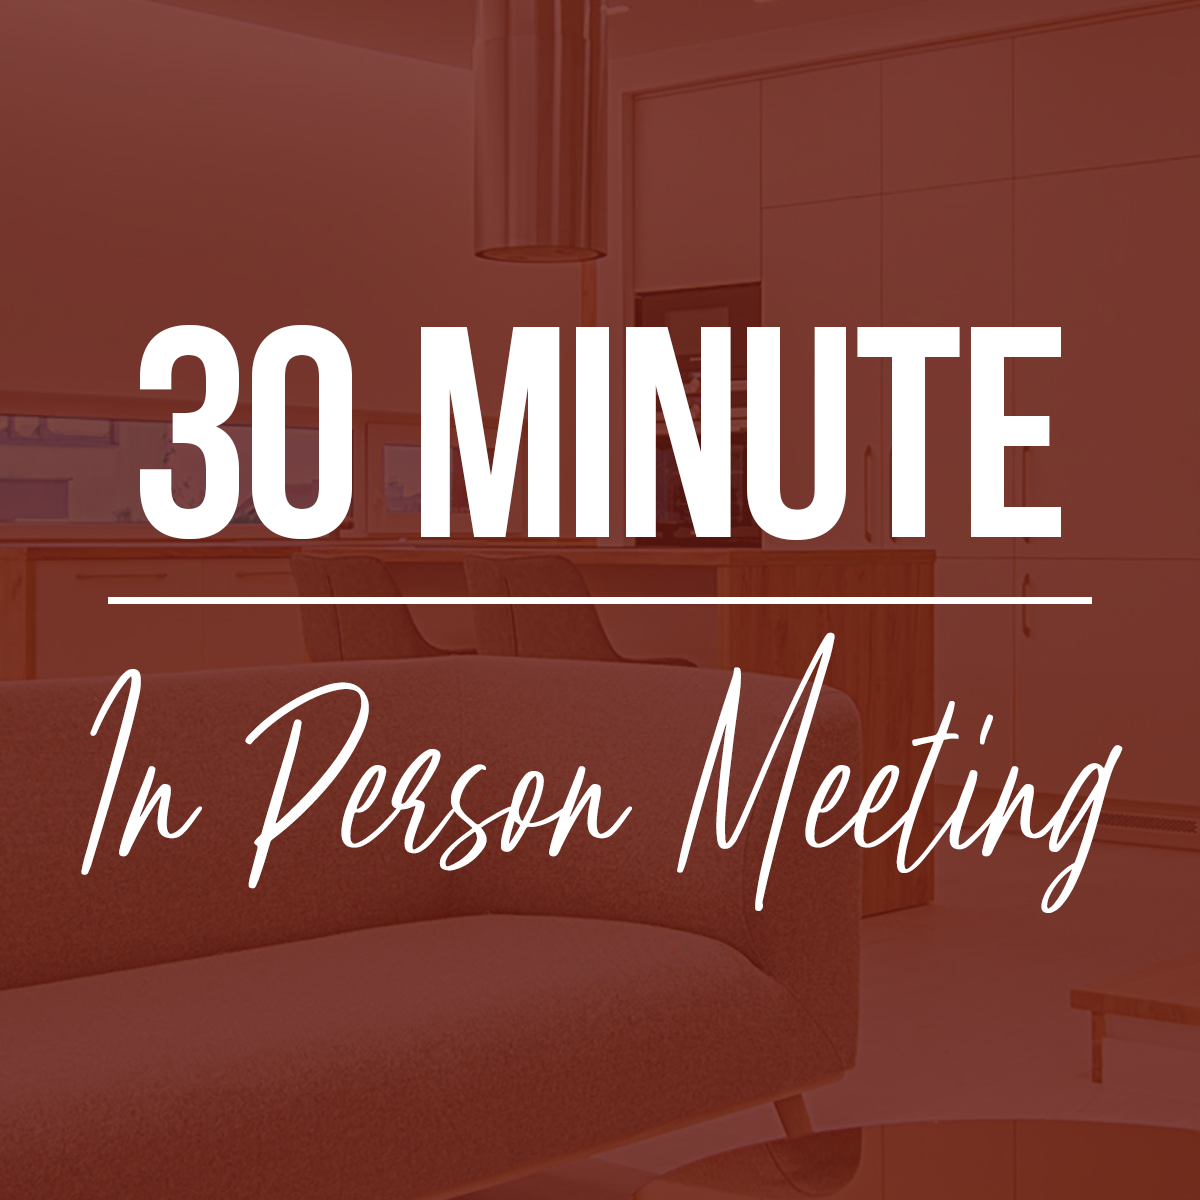 30 Minute In-Person Meeting